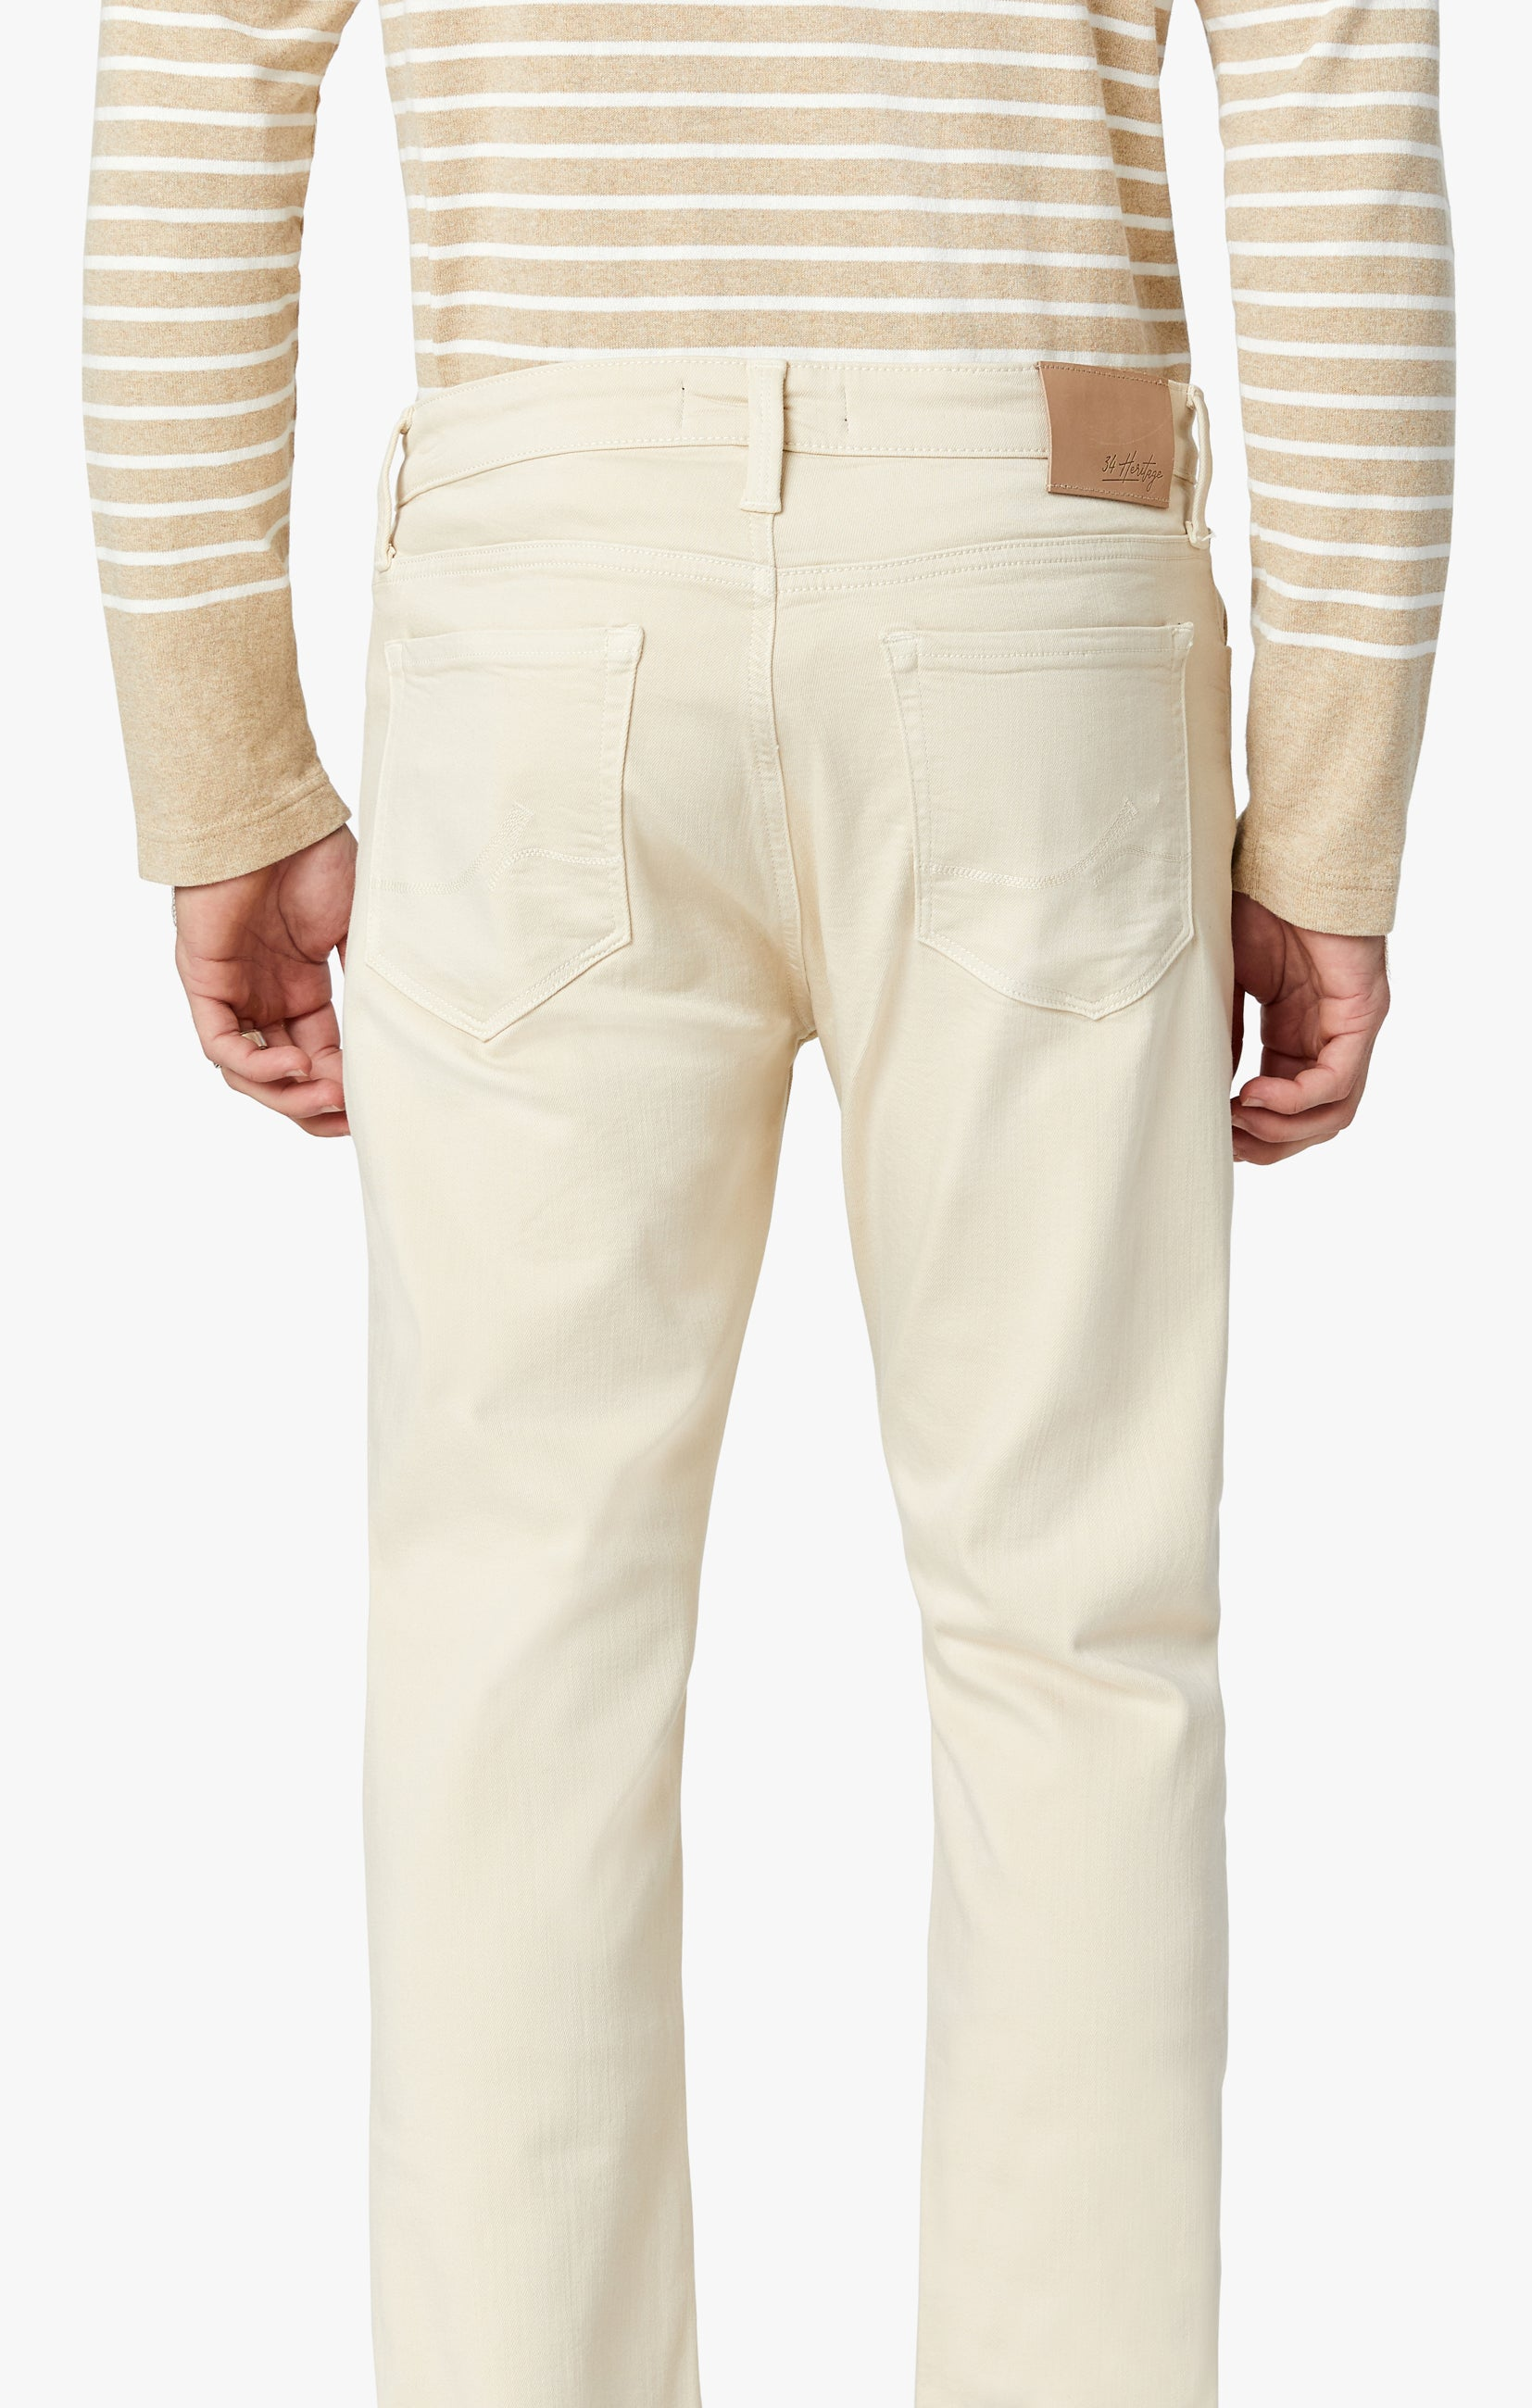 Cool Tapered Leg Pants In Natural Comfort Image 6